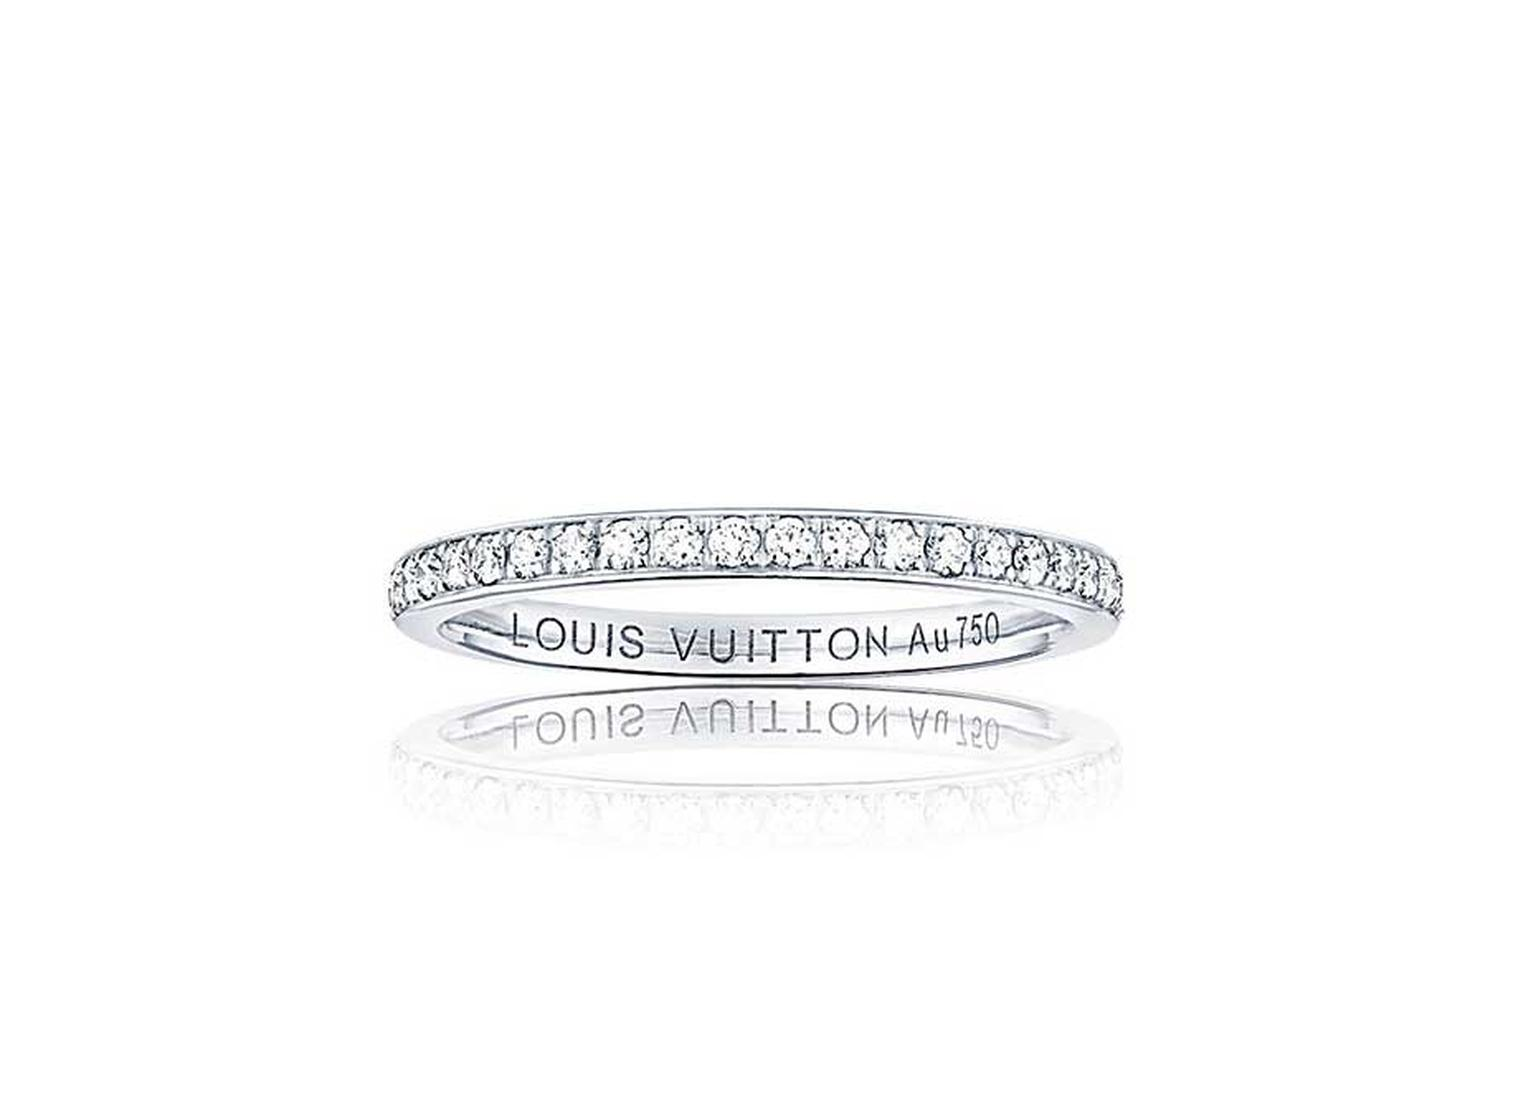 Louis Vuitton eternity ring in white gold, set with 44 brilliant-cut diamonds.